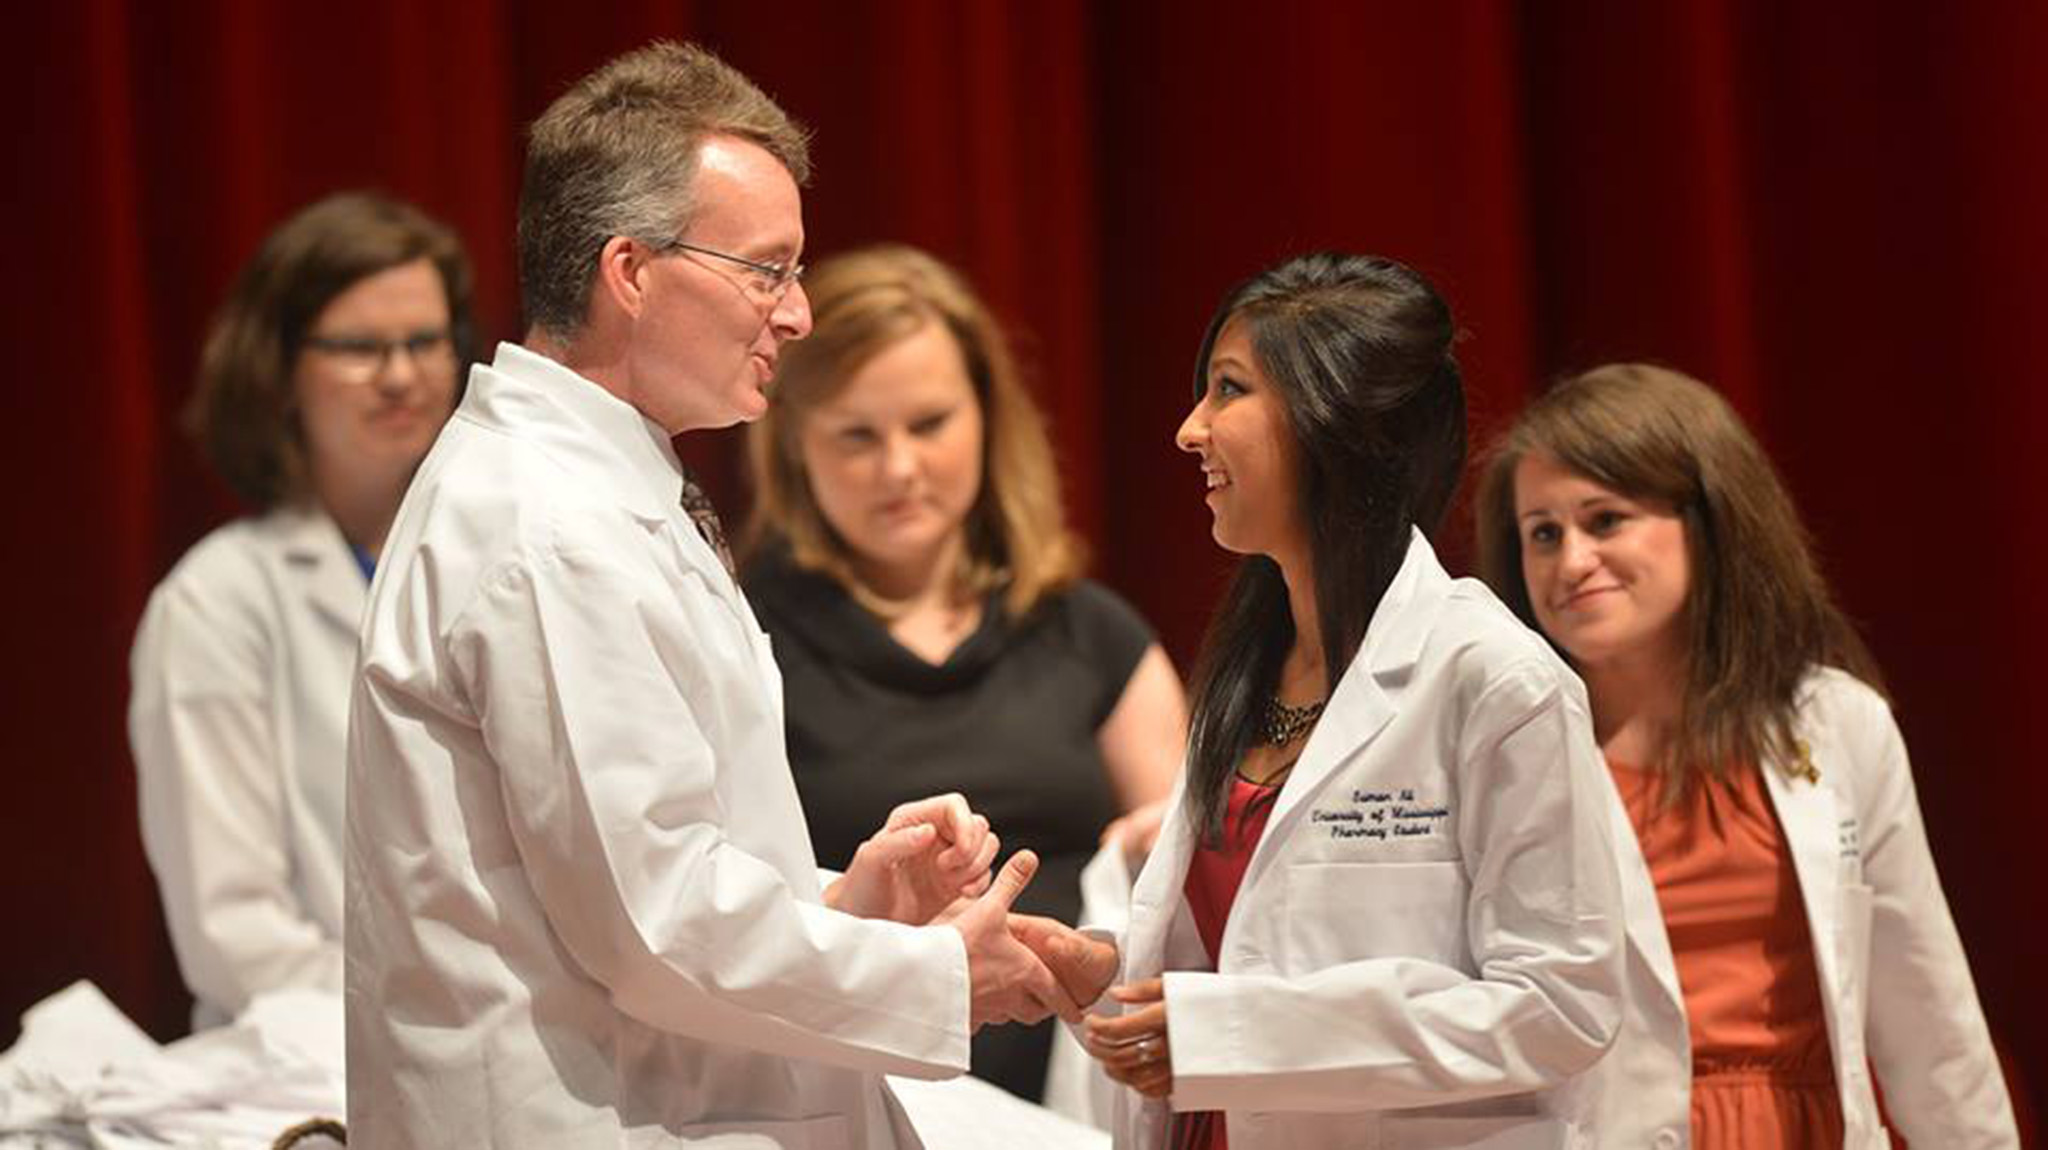 Incoming Pharmacy Students Honored at White Coat Ceremony - Ole